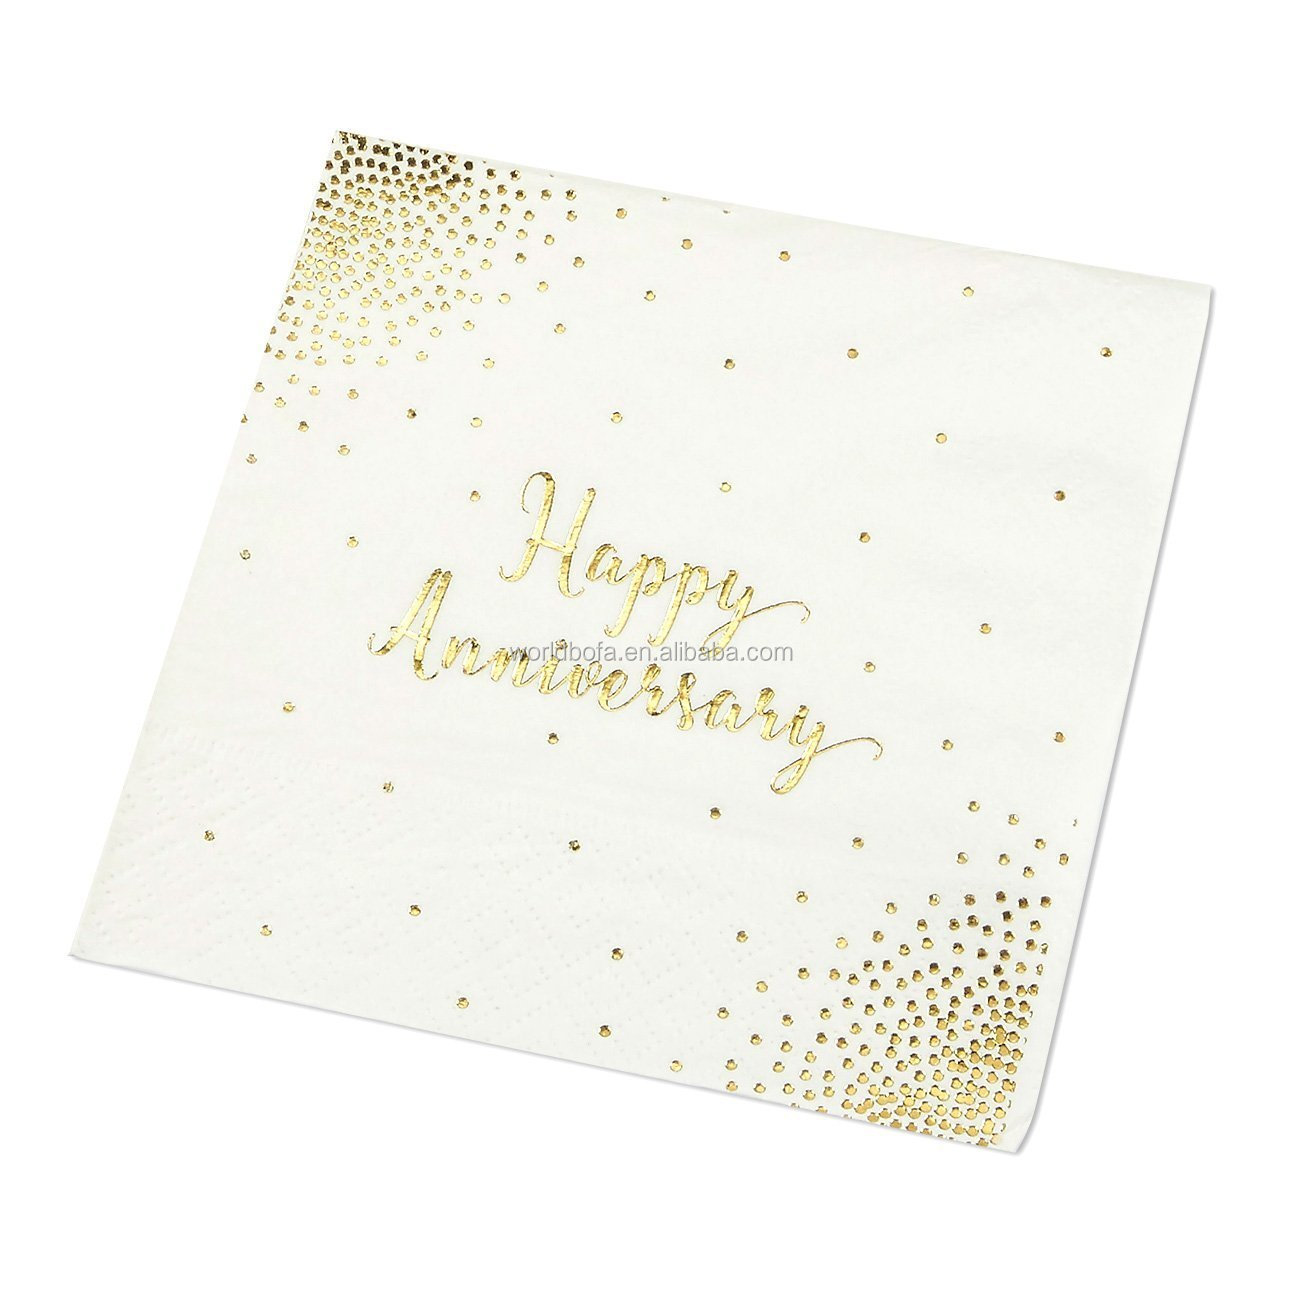 Printed Gold Foil Disposable Party Napkins for Anniversary Celebration